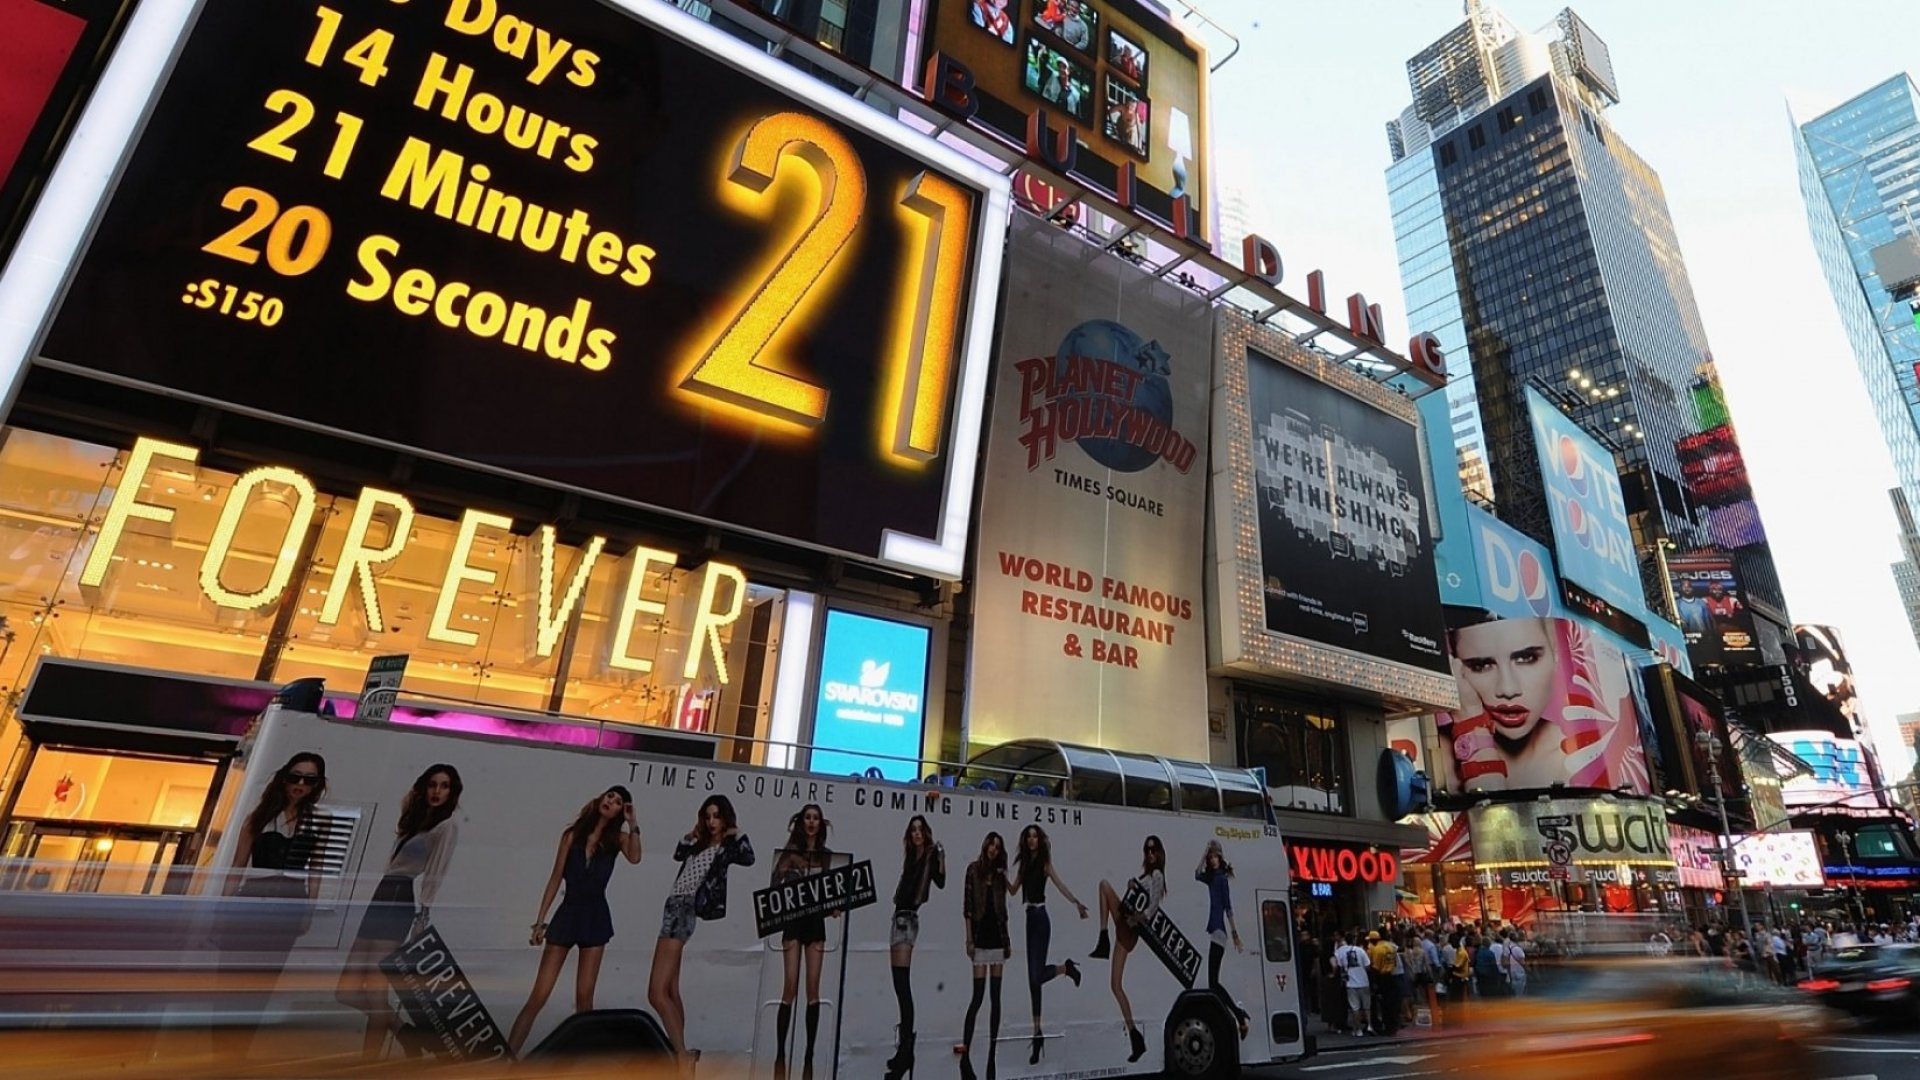 Right before the opening of the flagship Forever 21 Times Square store in New York City